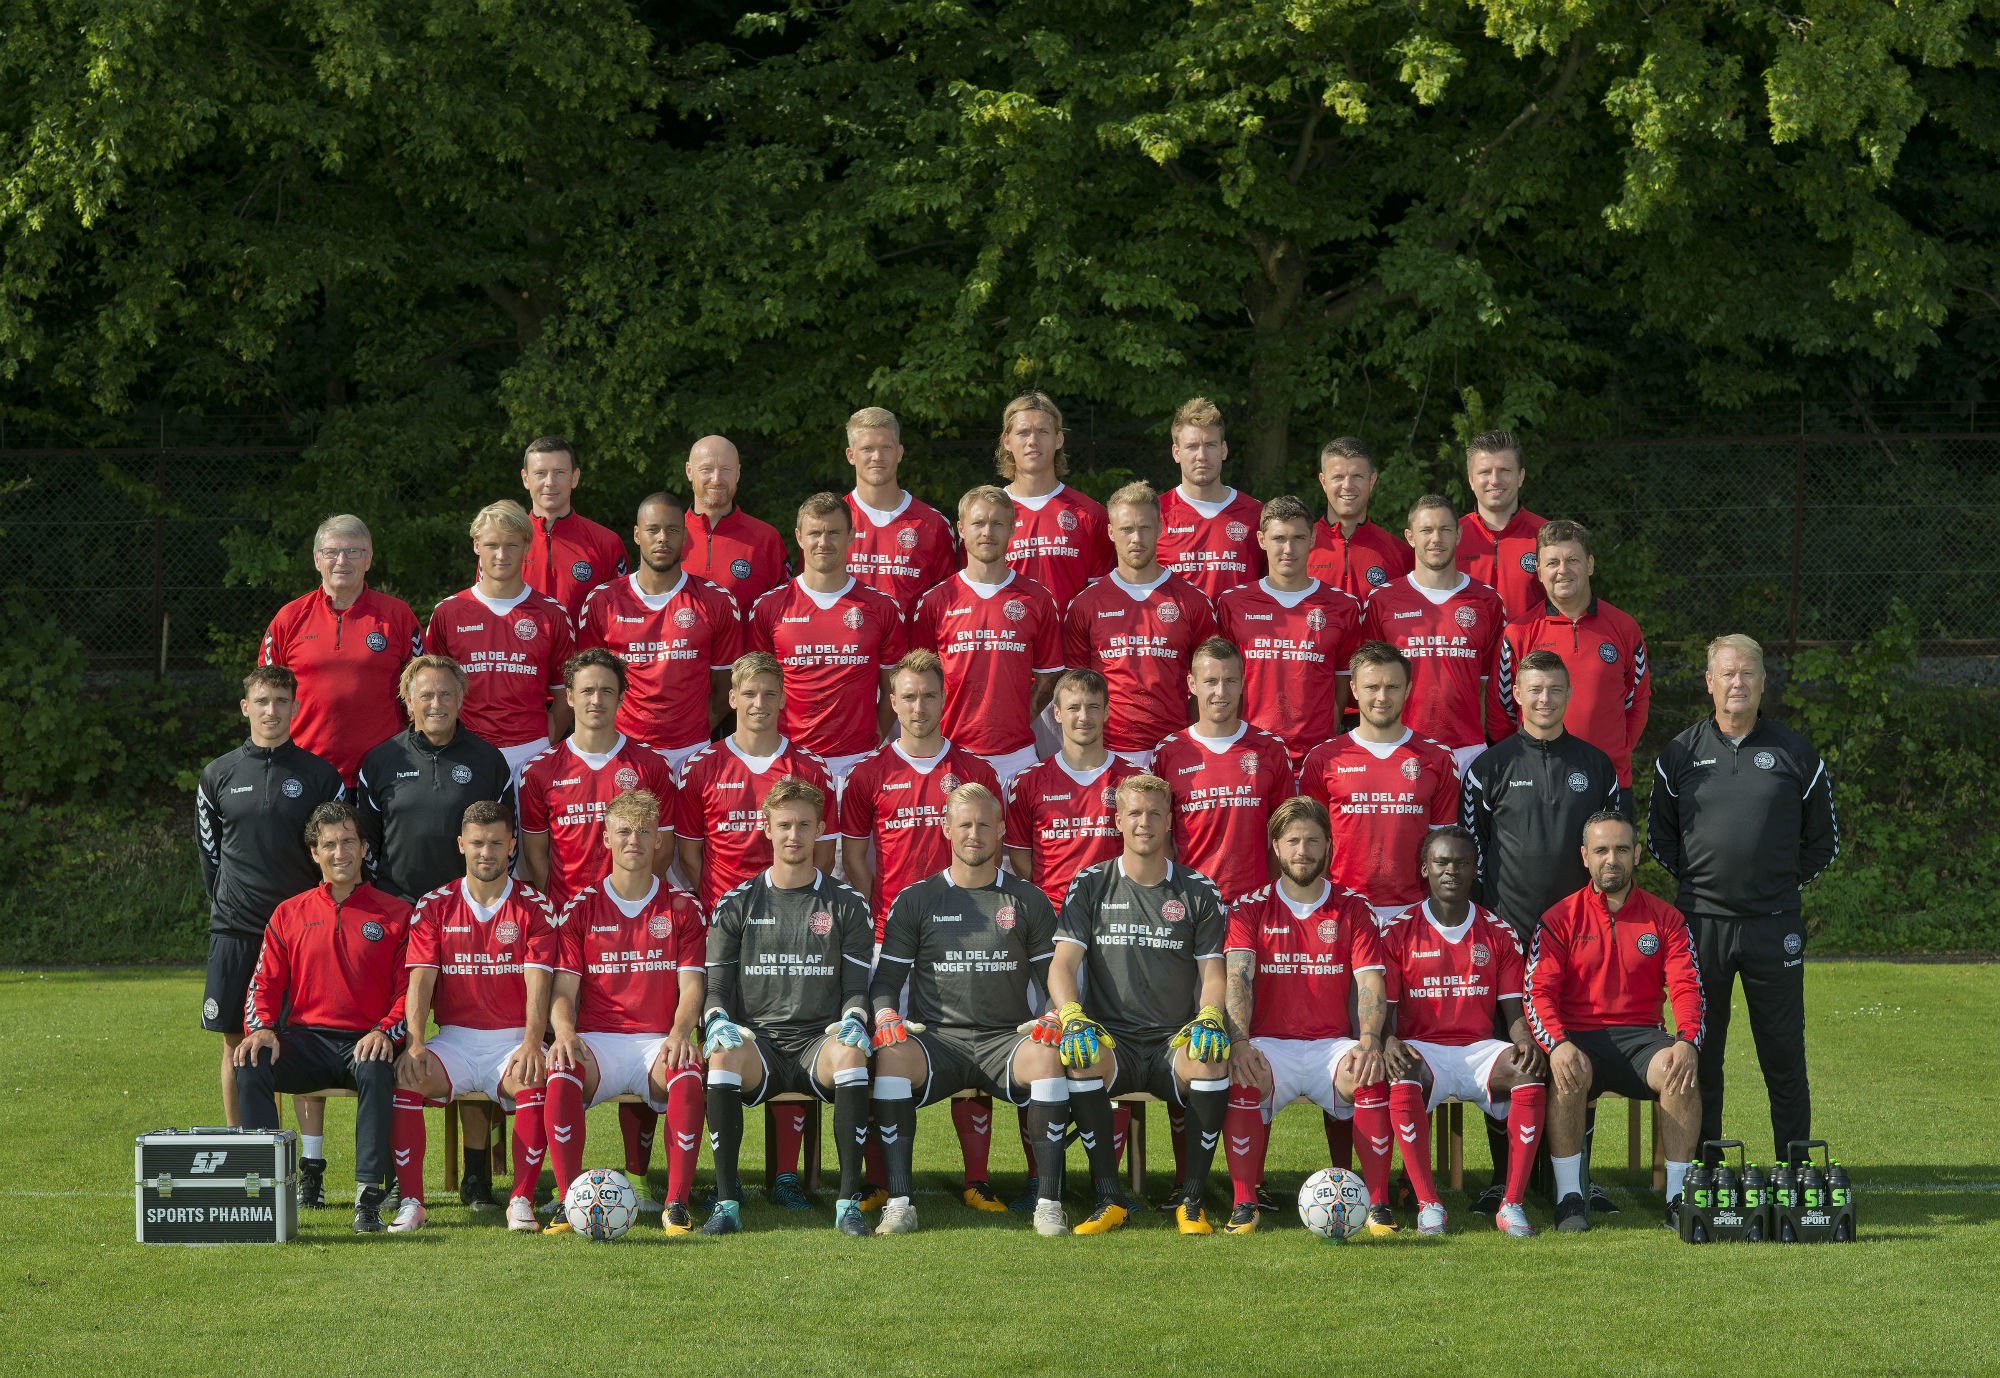 Denmark's 23-man FIFA World Cup squad. Picture source: @DBUfodbold